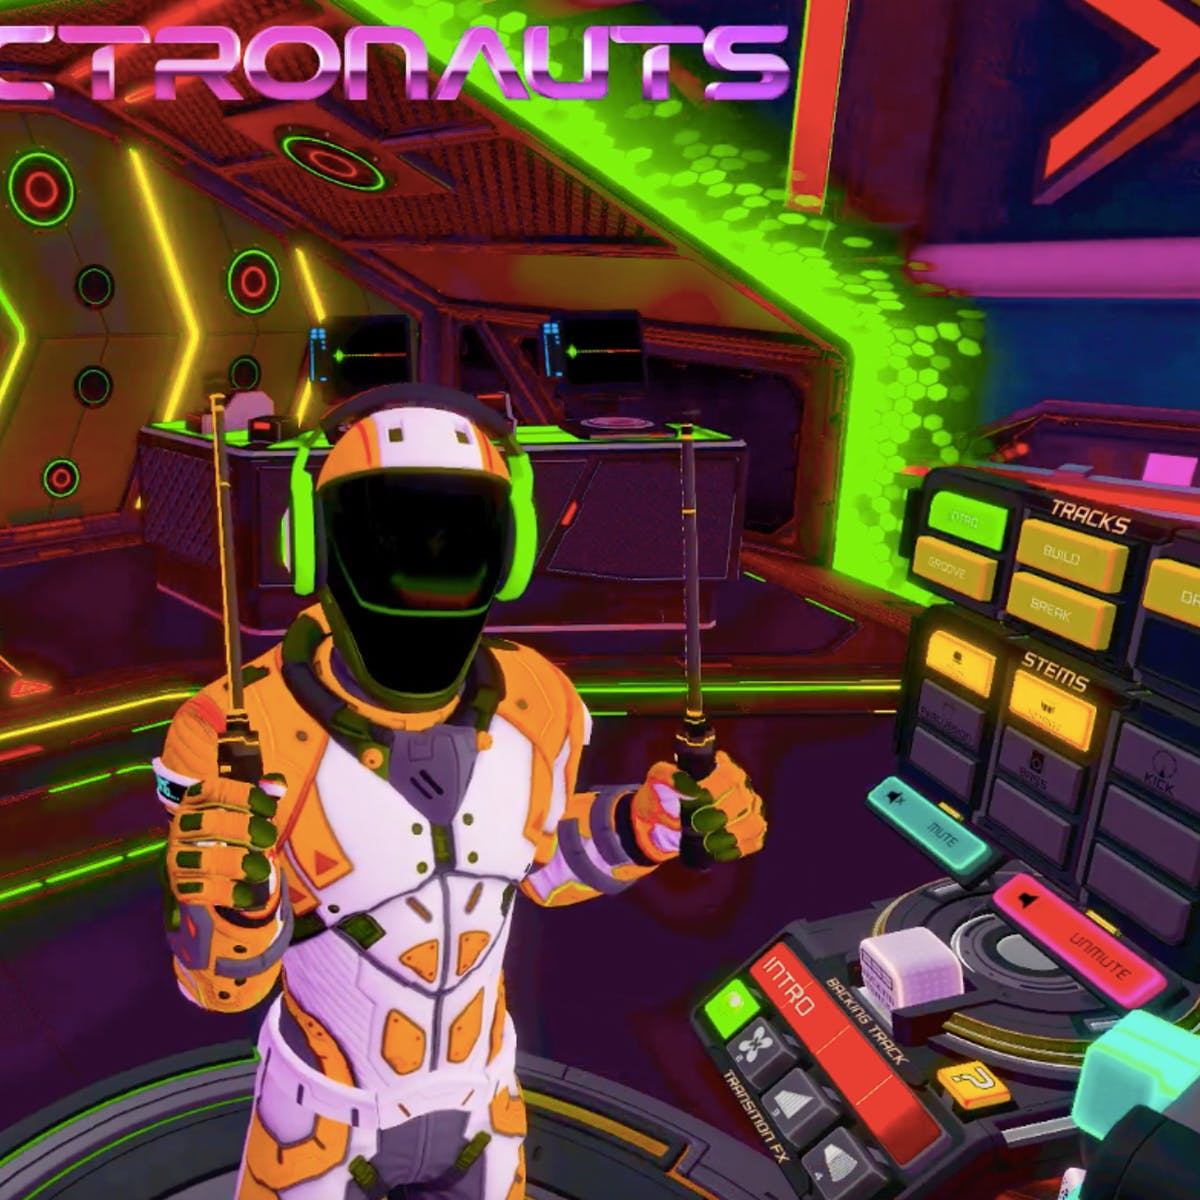 Electronauts' VR Experience Will Make You Feel Like You're